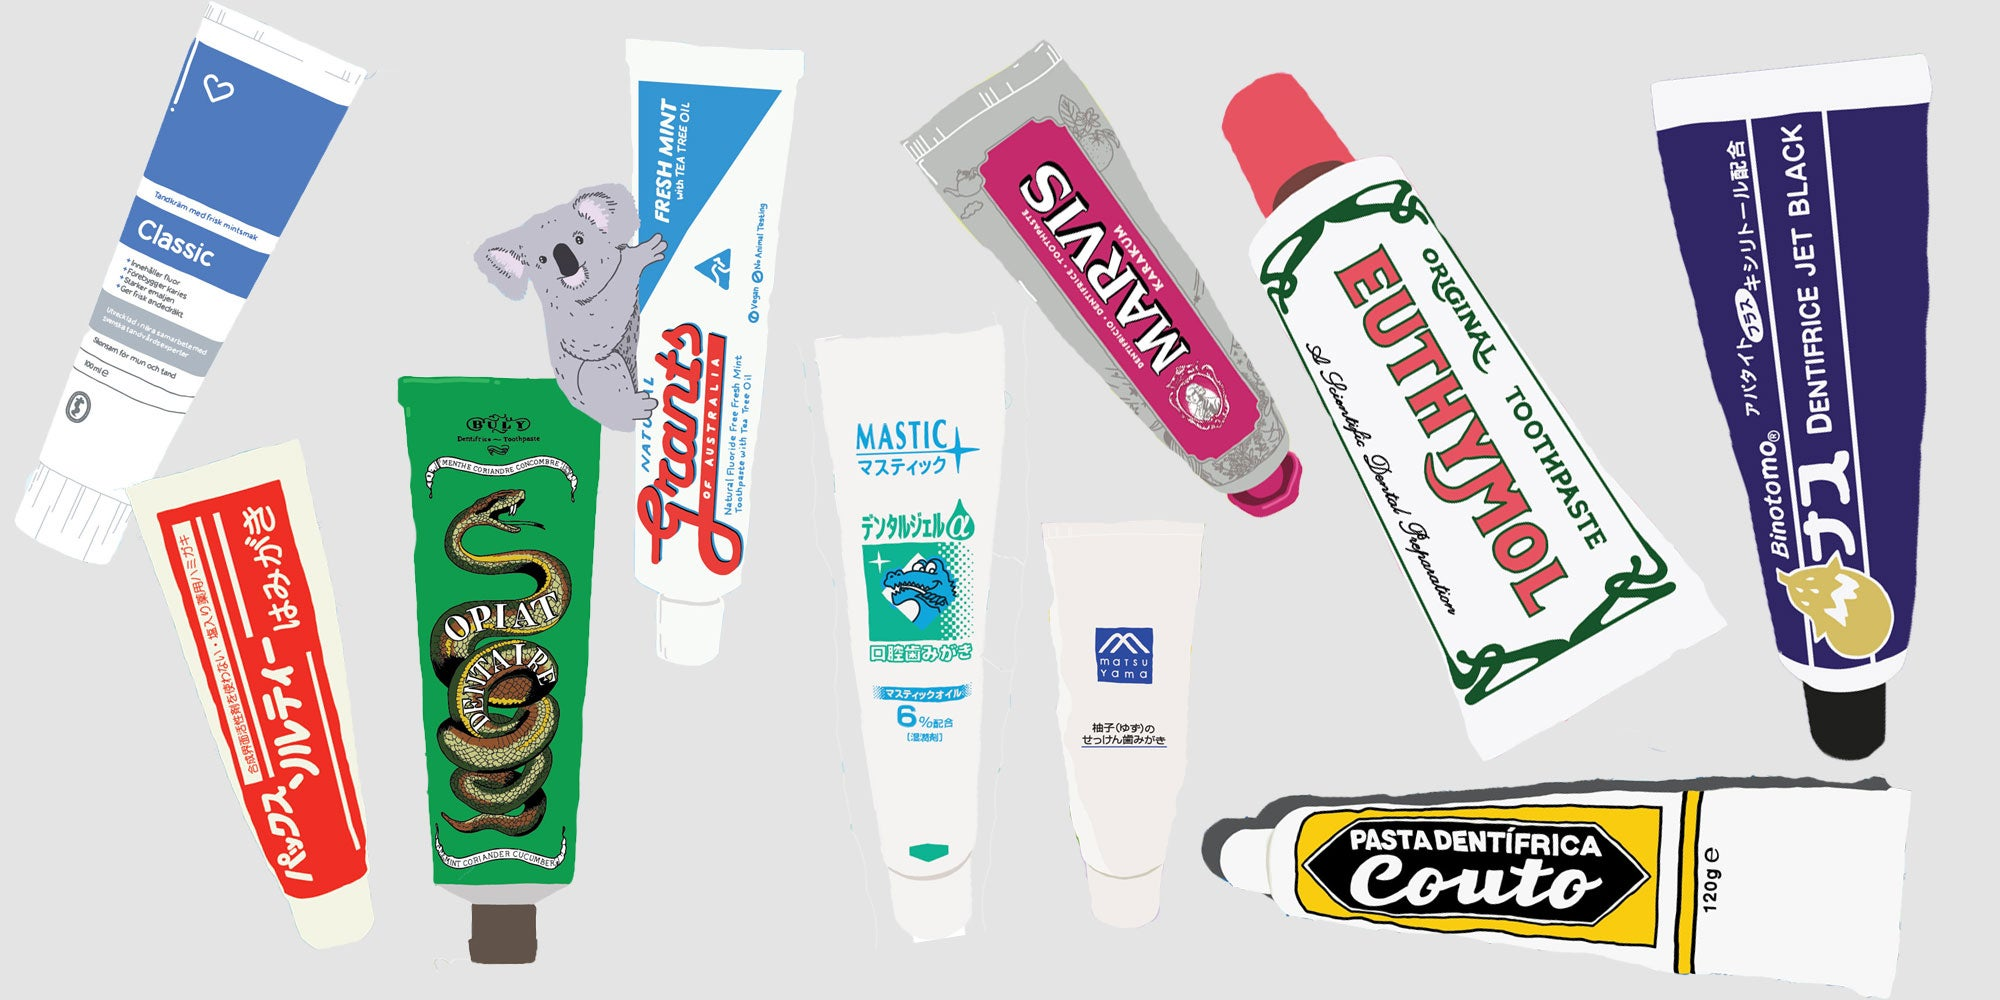 Toothpaste is Our New Favorite Souvenir